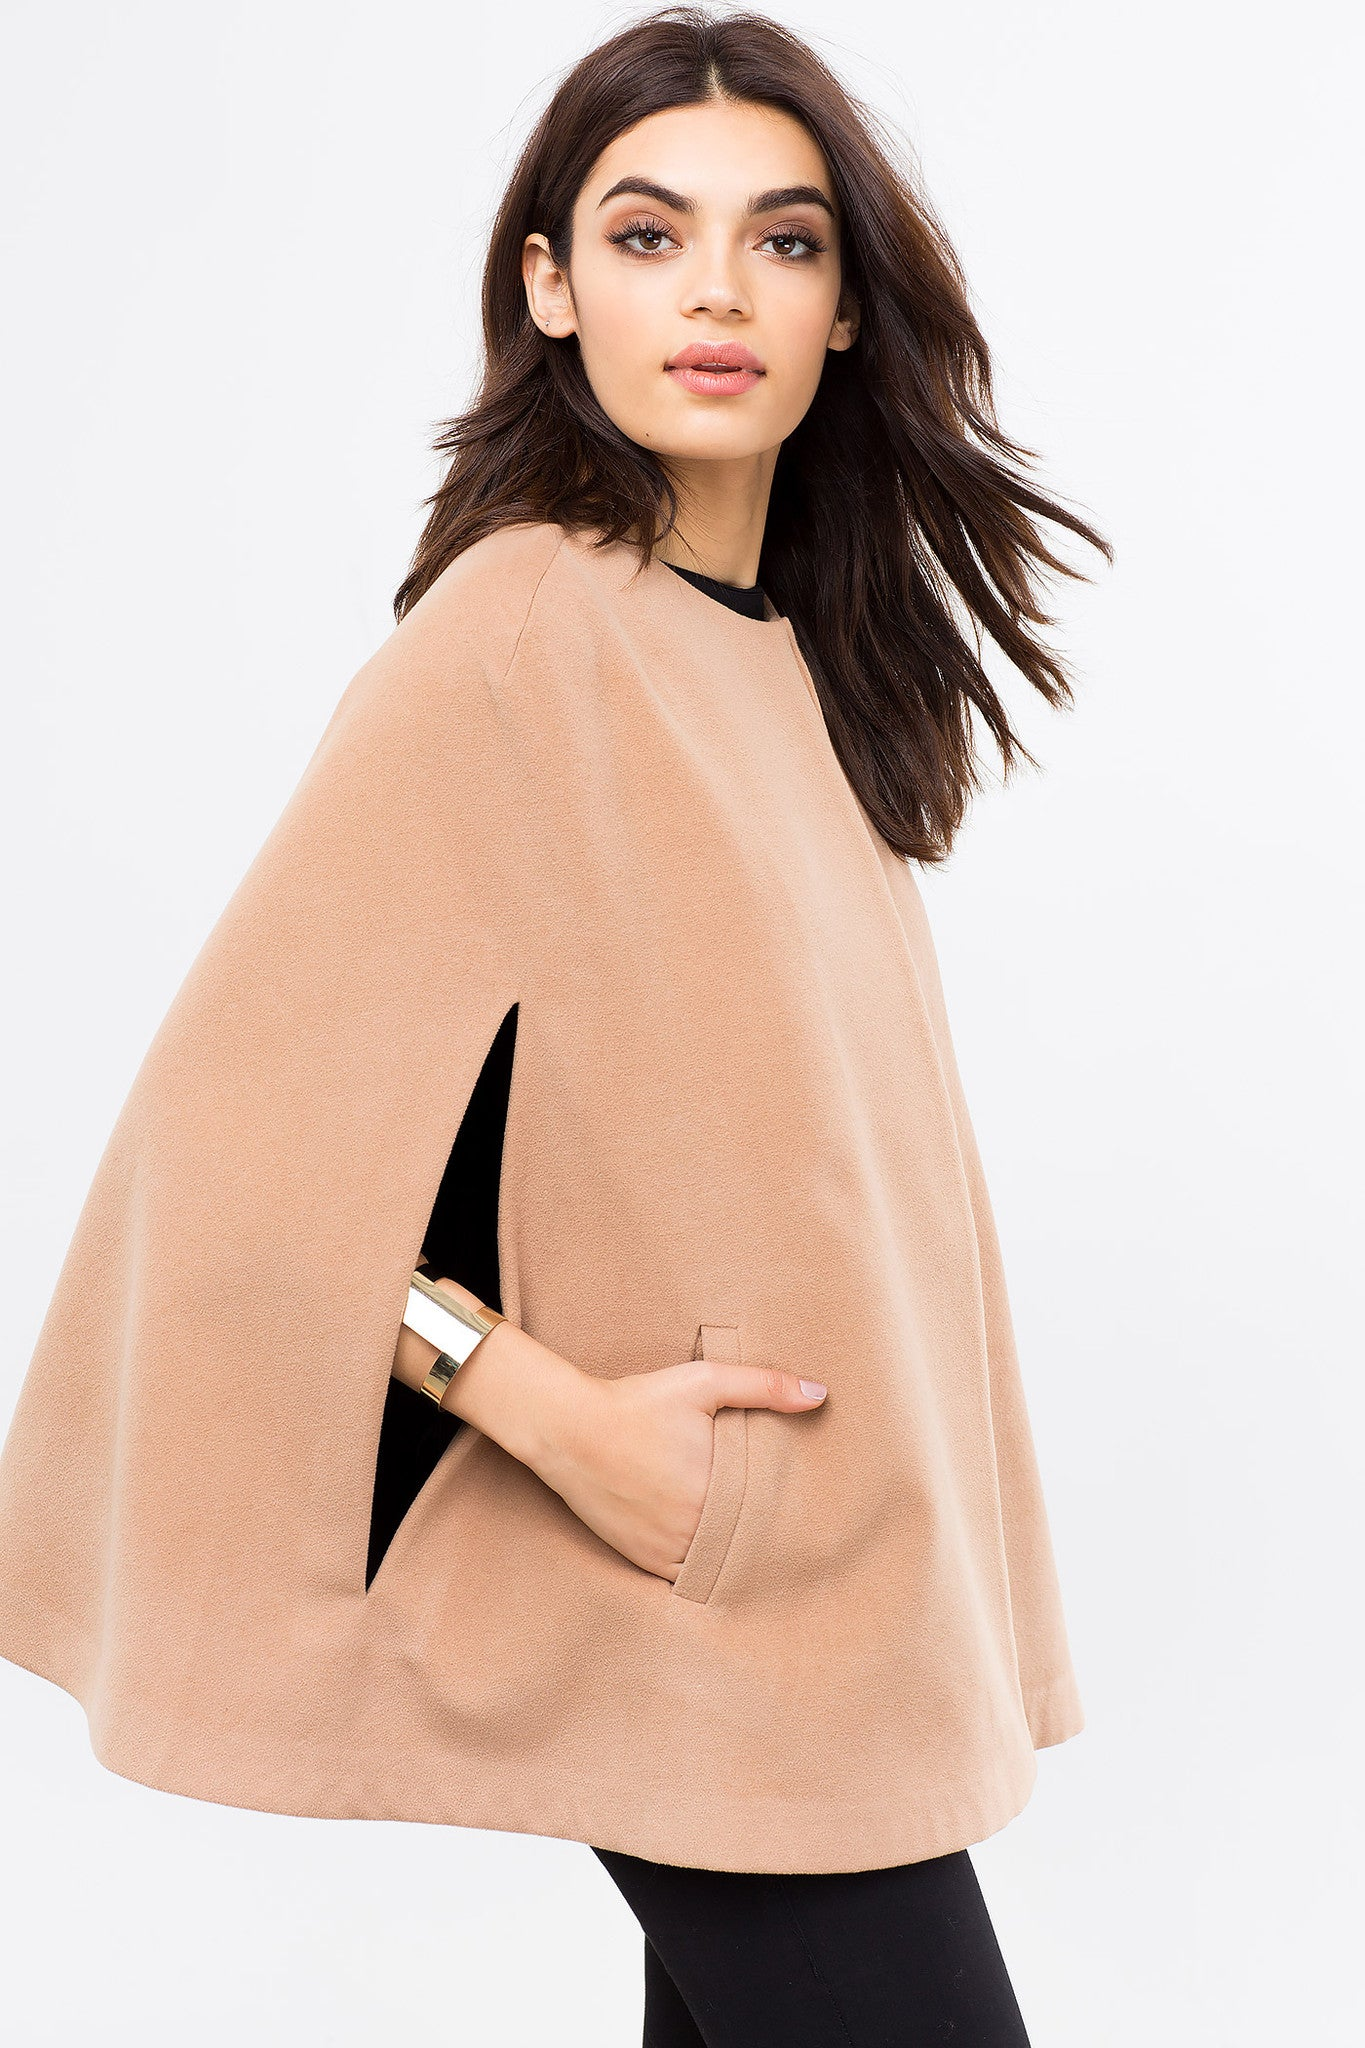 Open Front Slit Sleeve Cape with pocket, in camel tan, front view